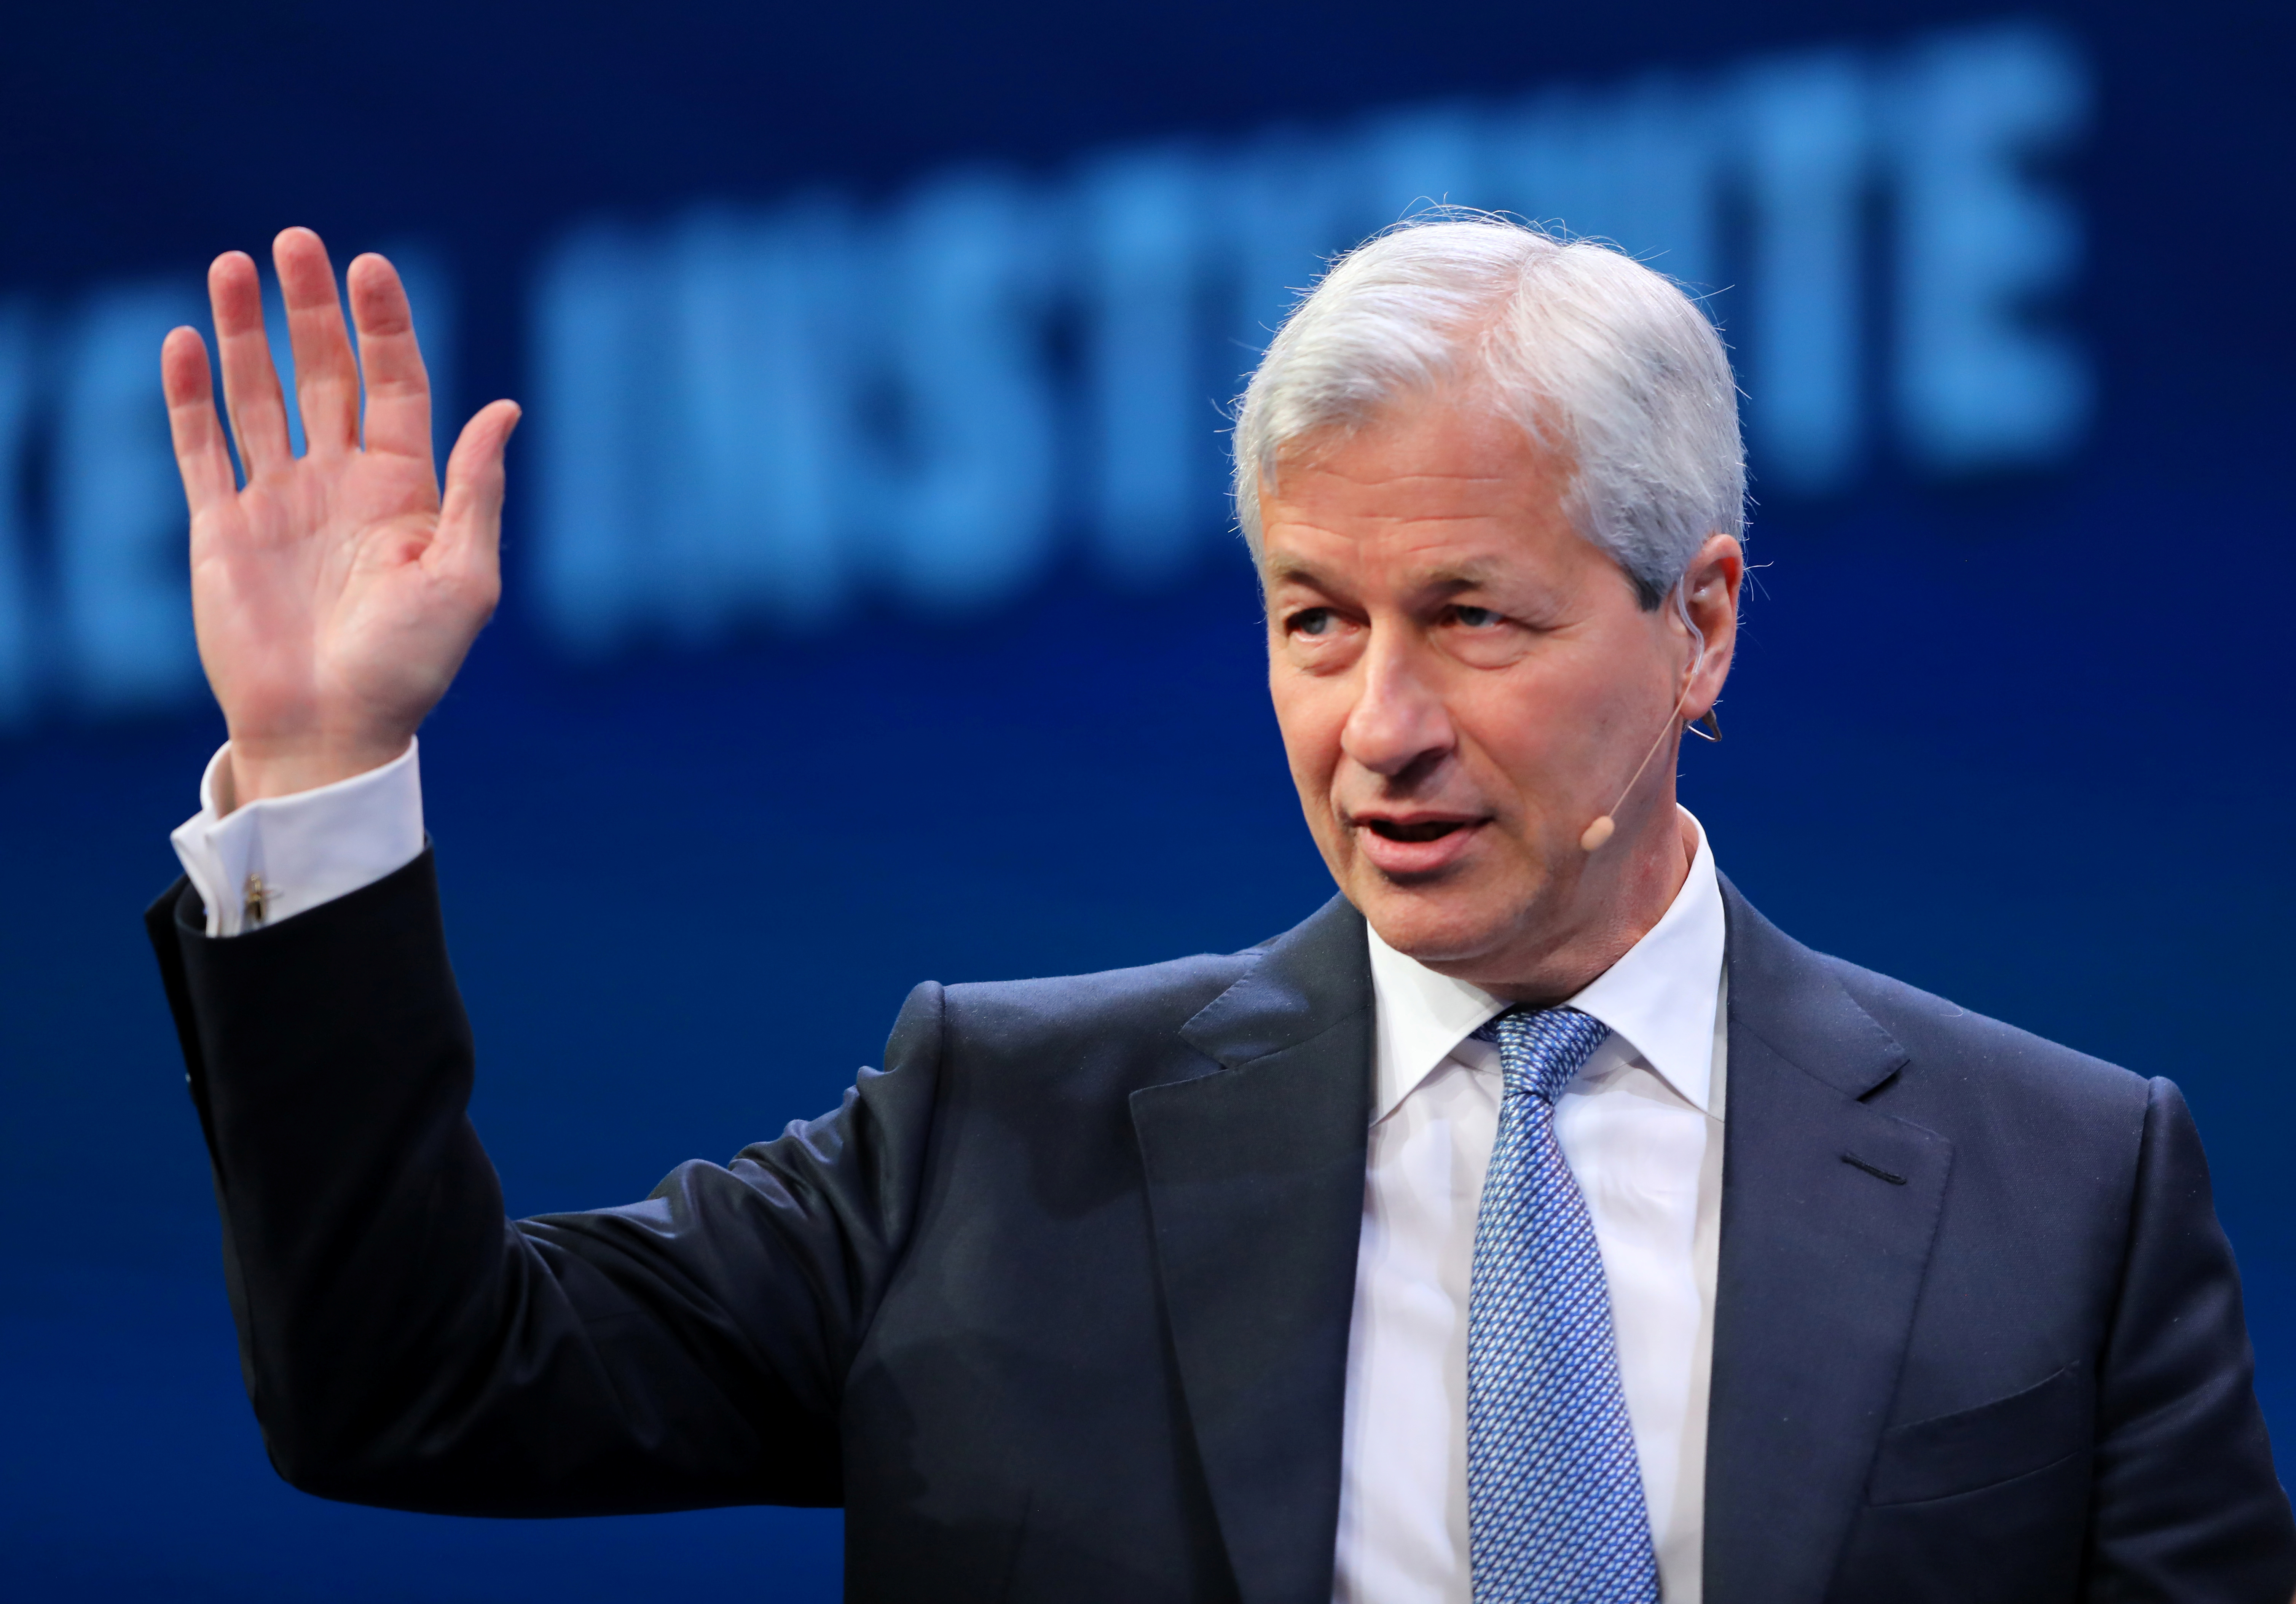 JPMorgan gives Dimon freedom to outstay welcome